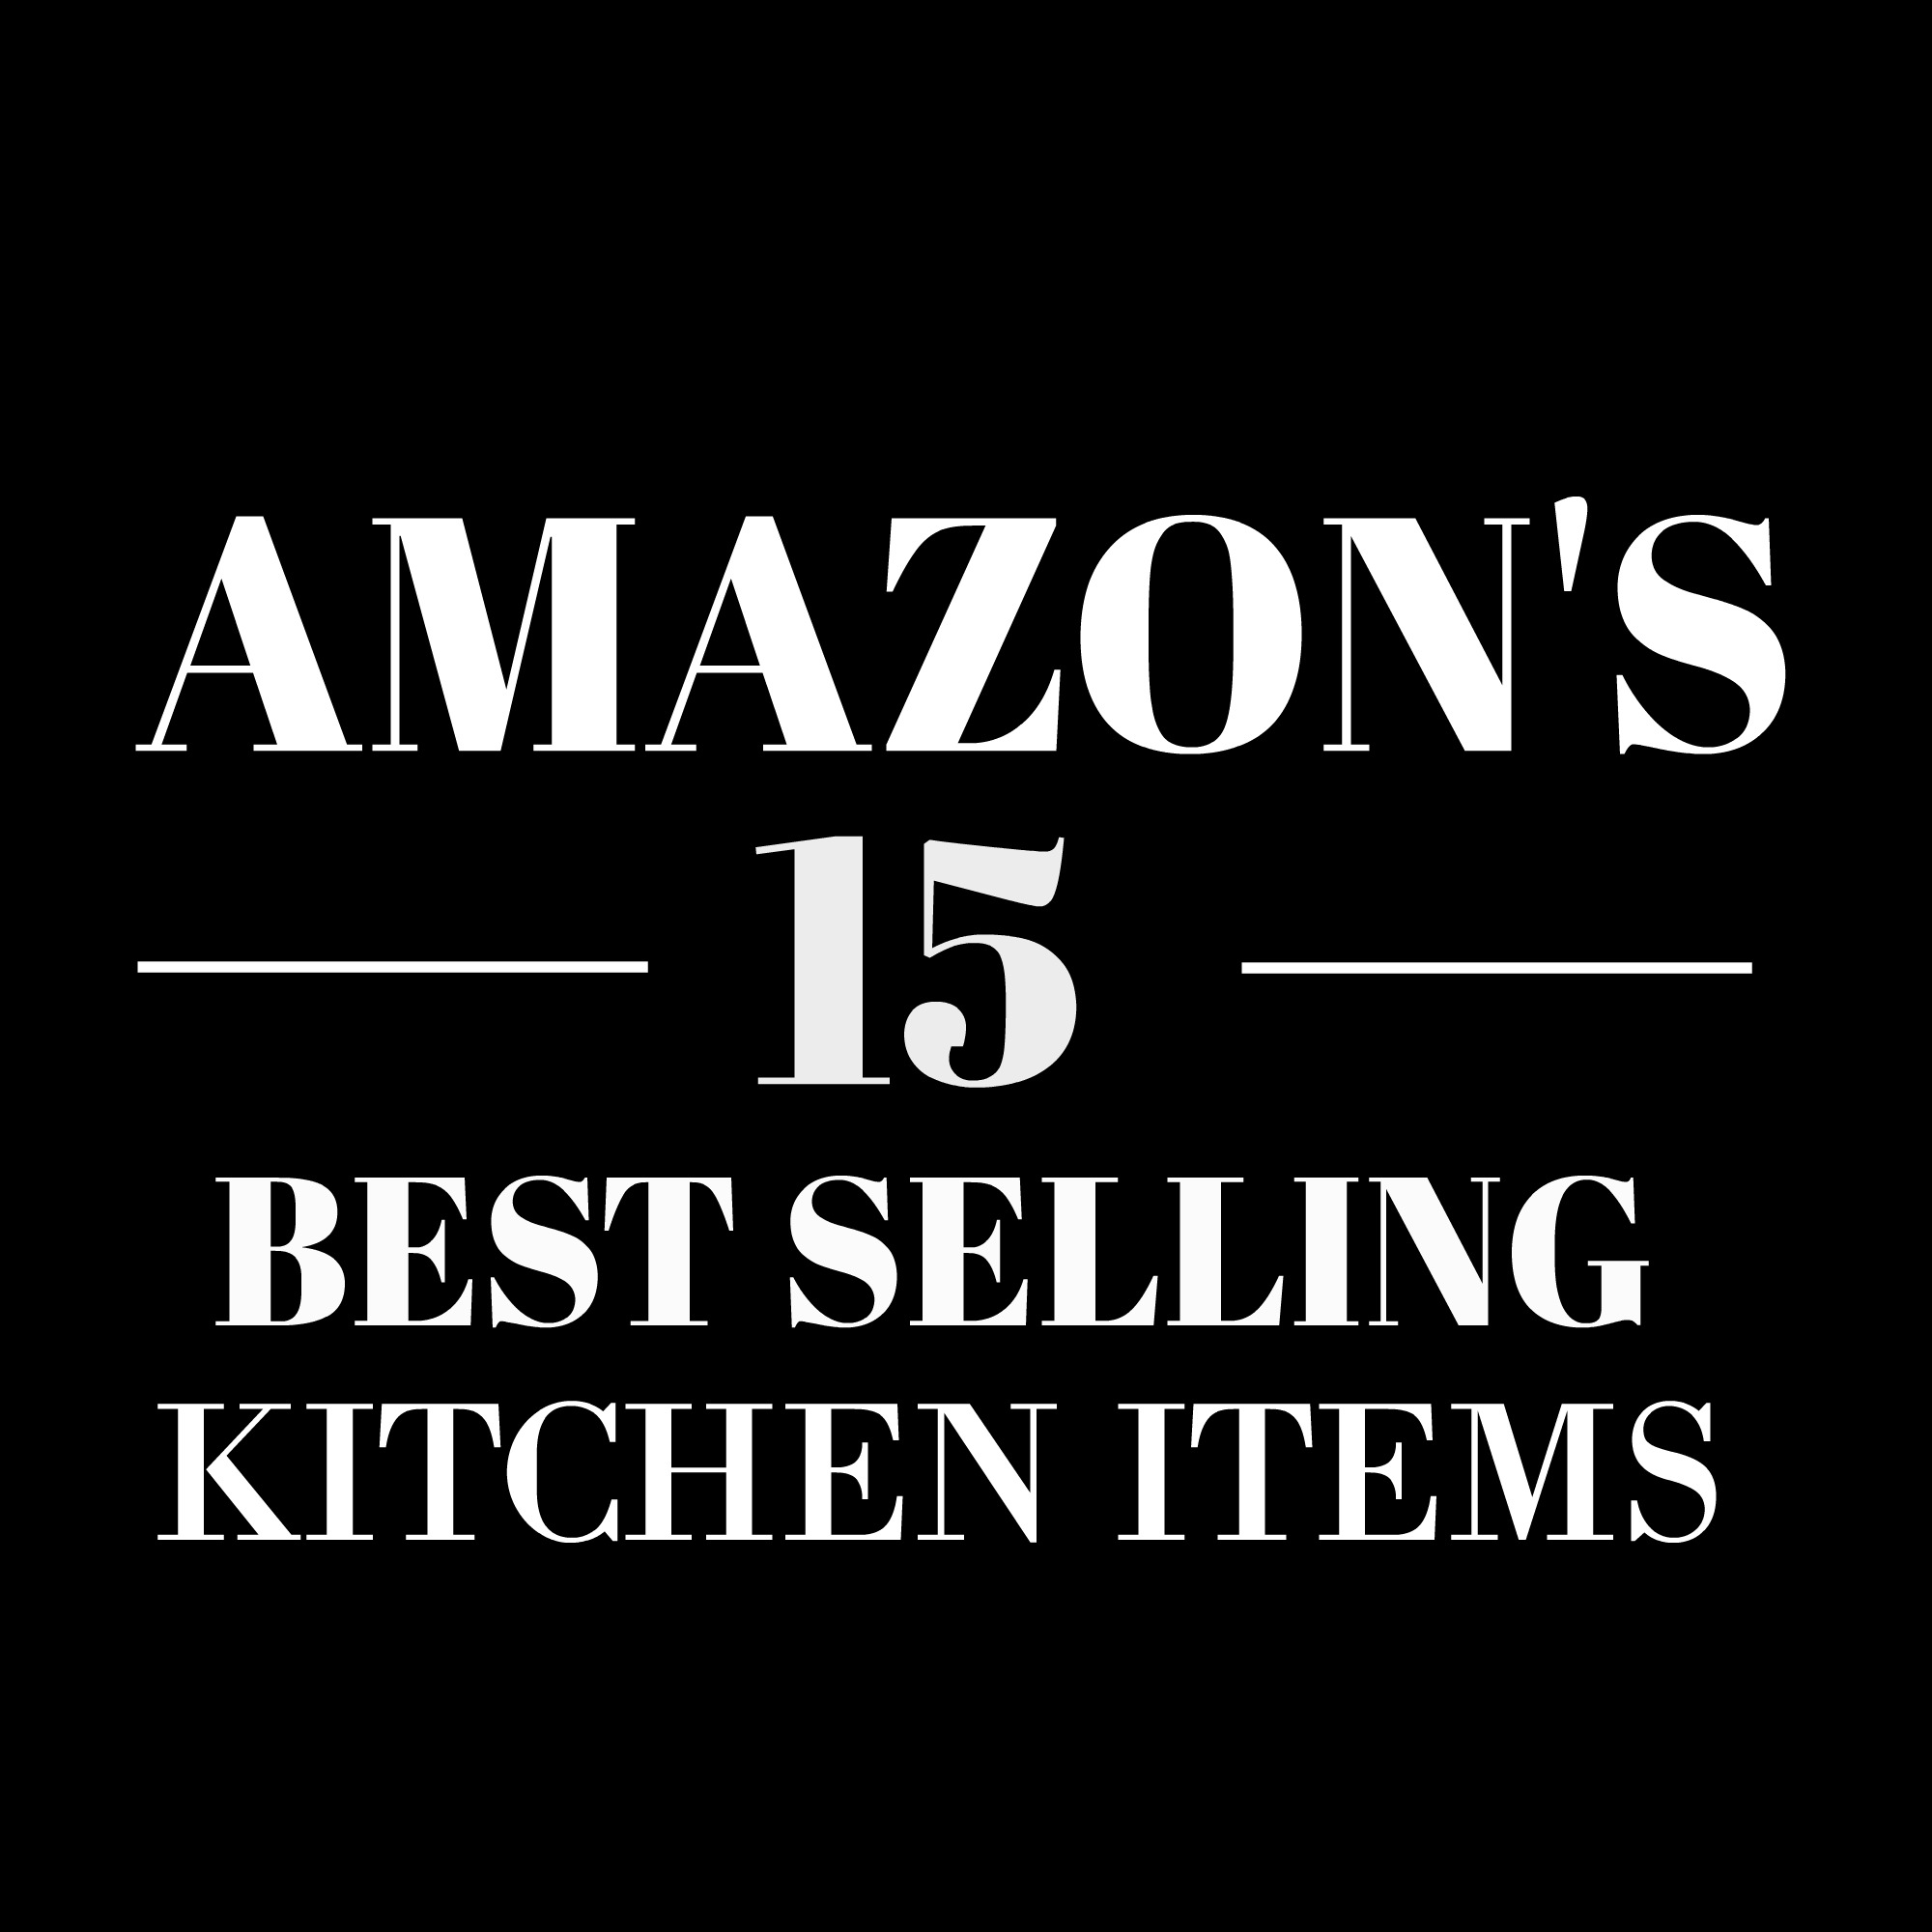 BEST SELLING ITEMS ON AMAZON